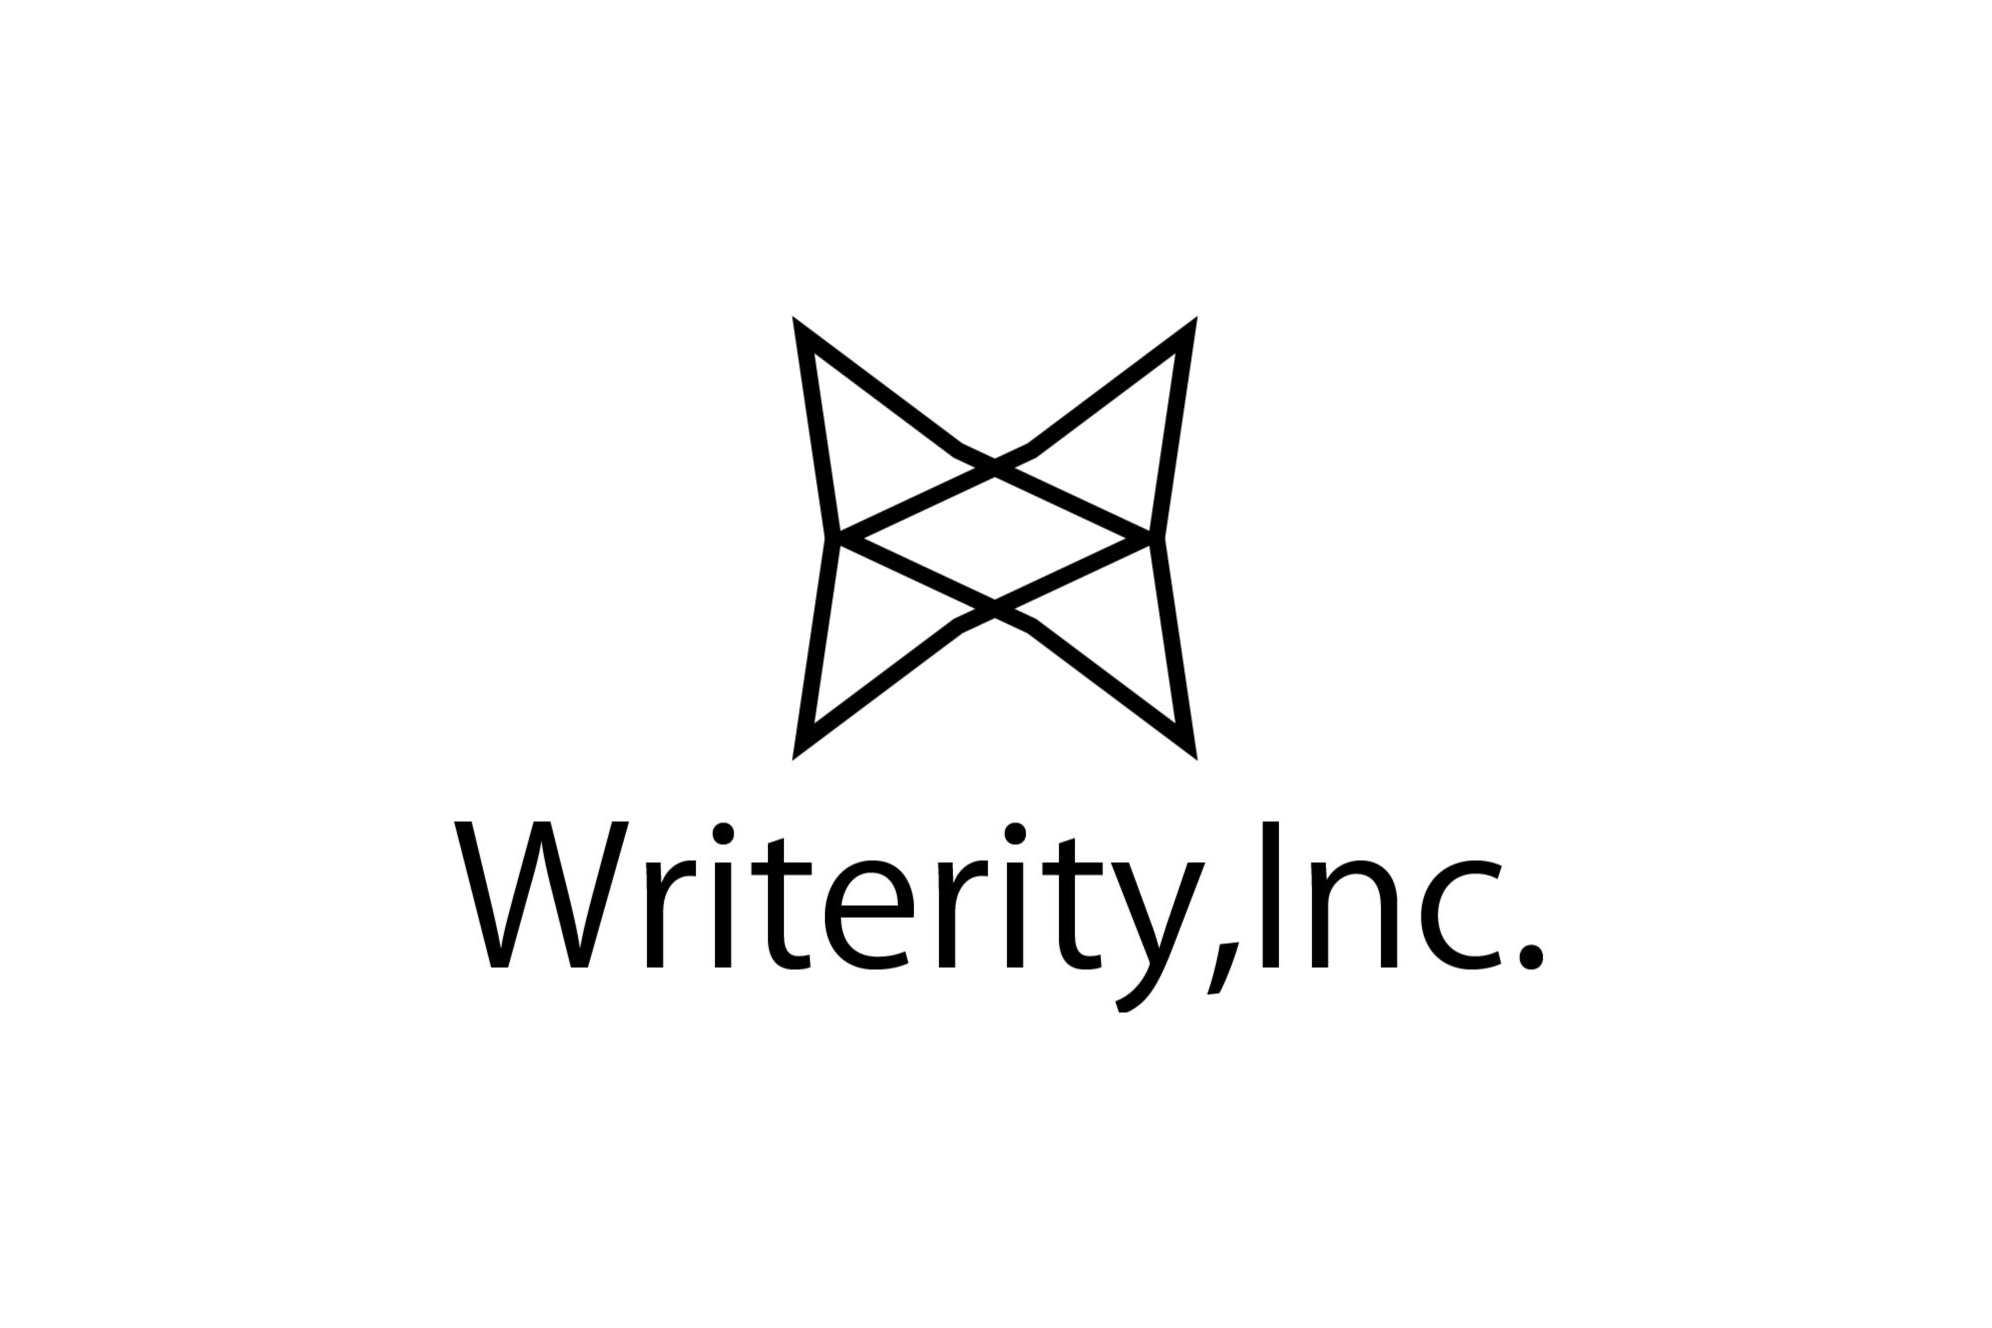 Writerity member: Kire